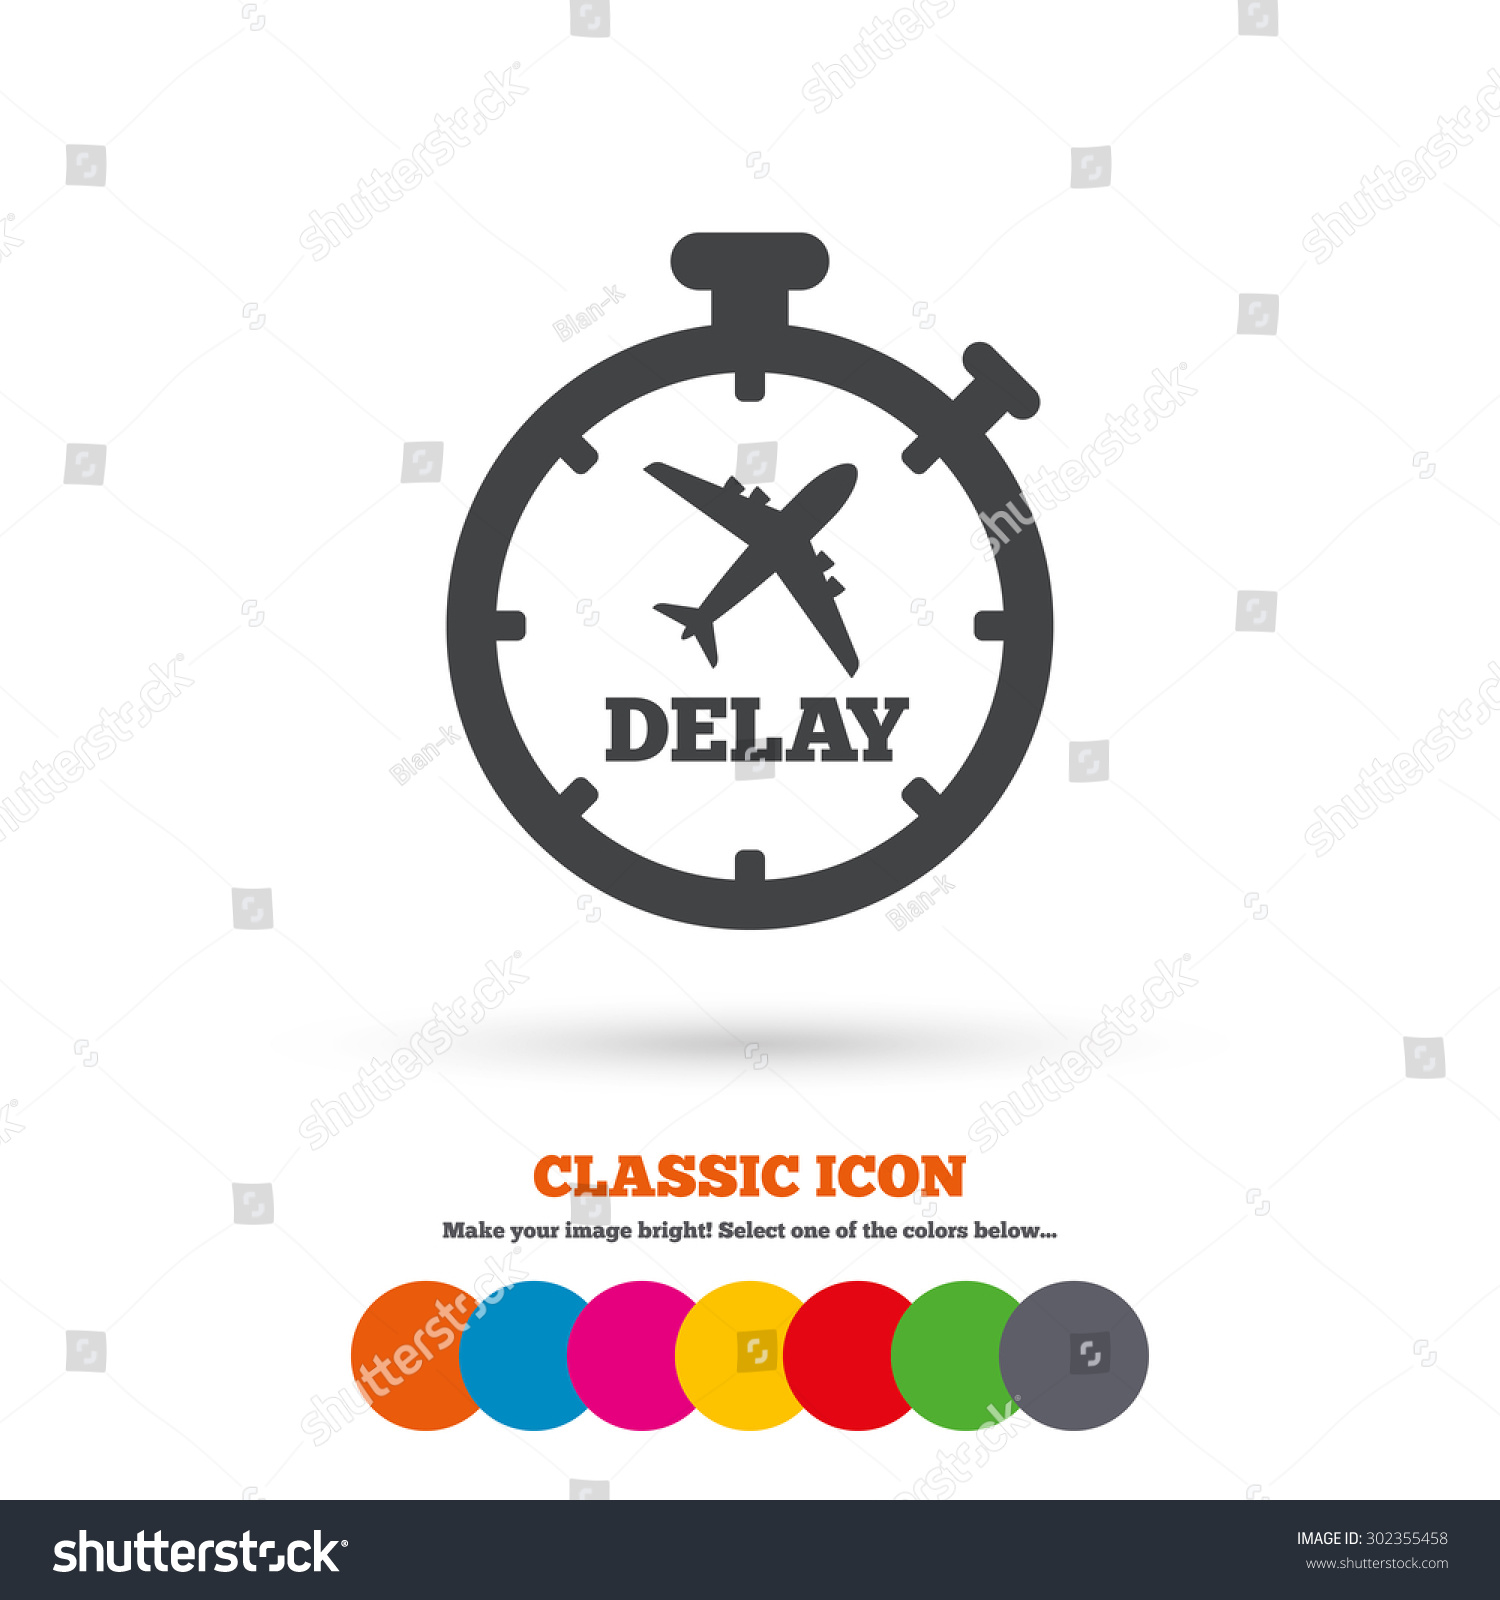 Delay Clip Art Pictures to Pin on Pinterest - PinsDaddy